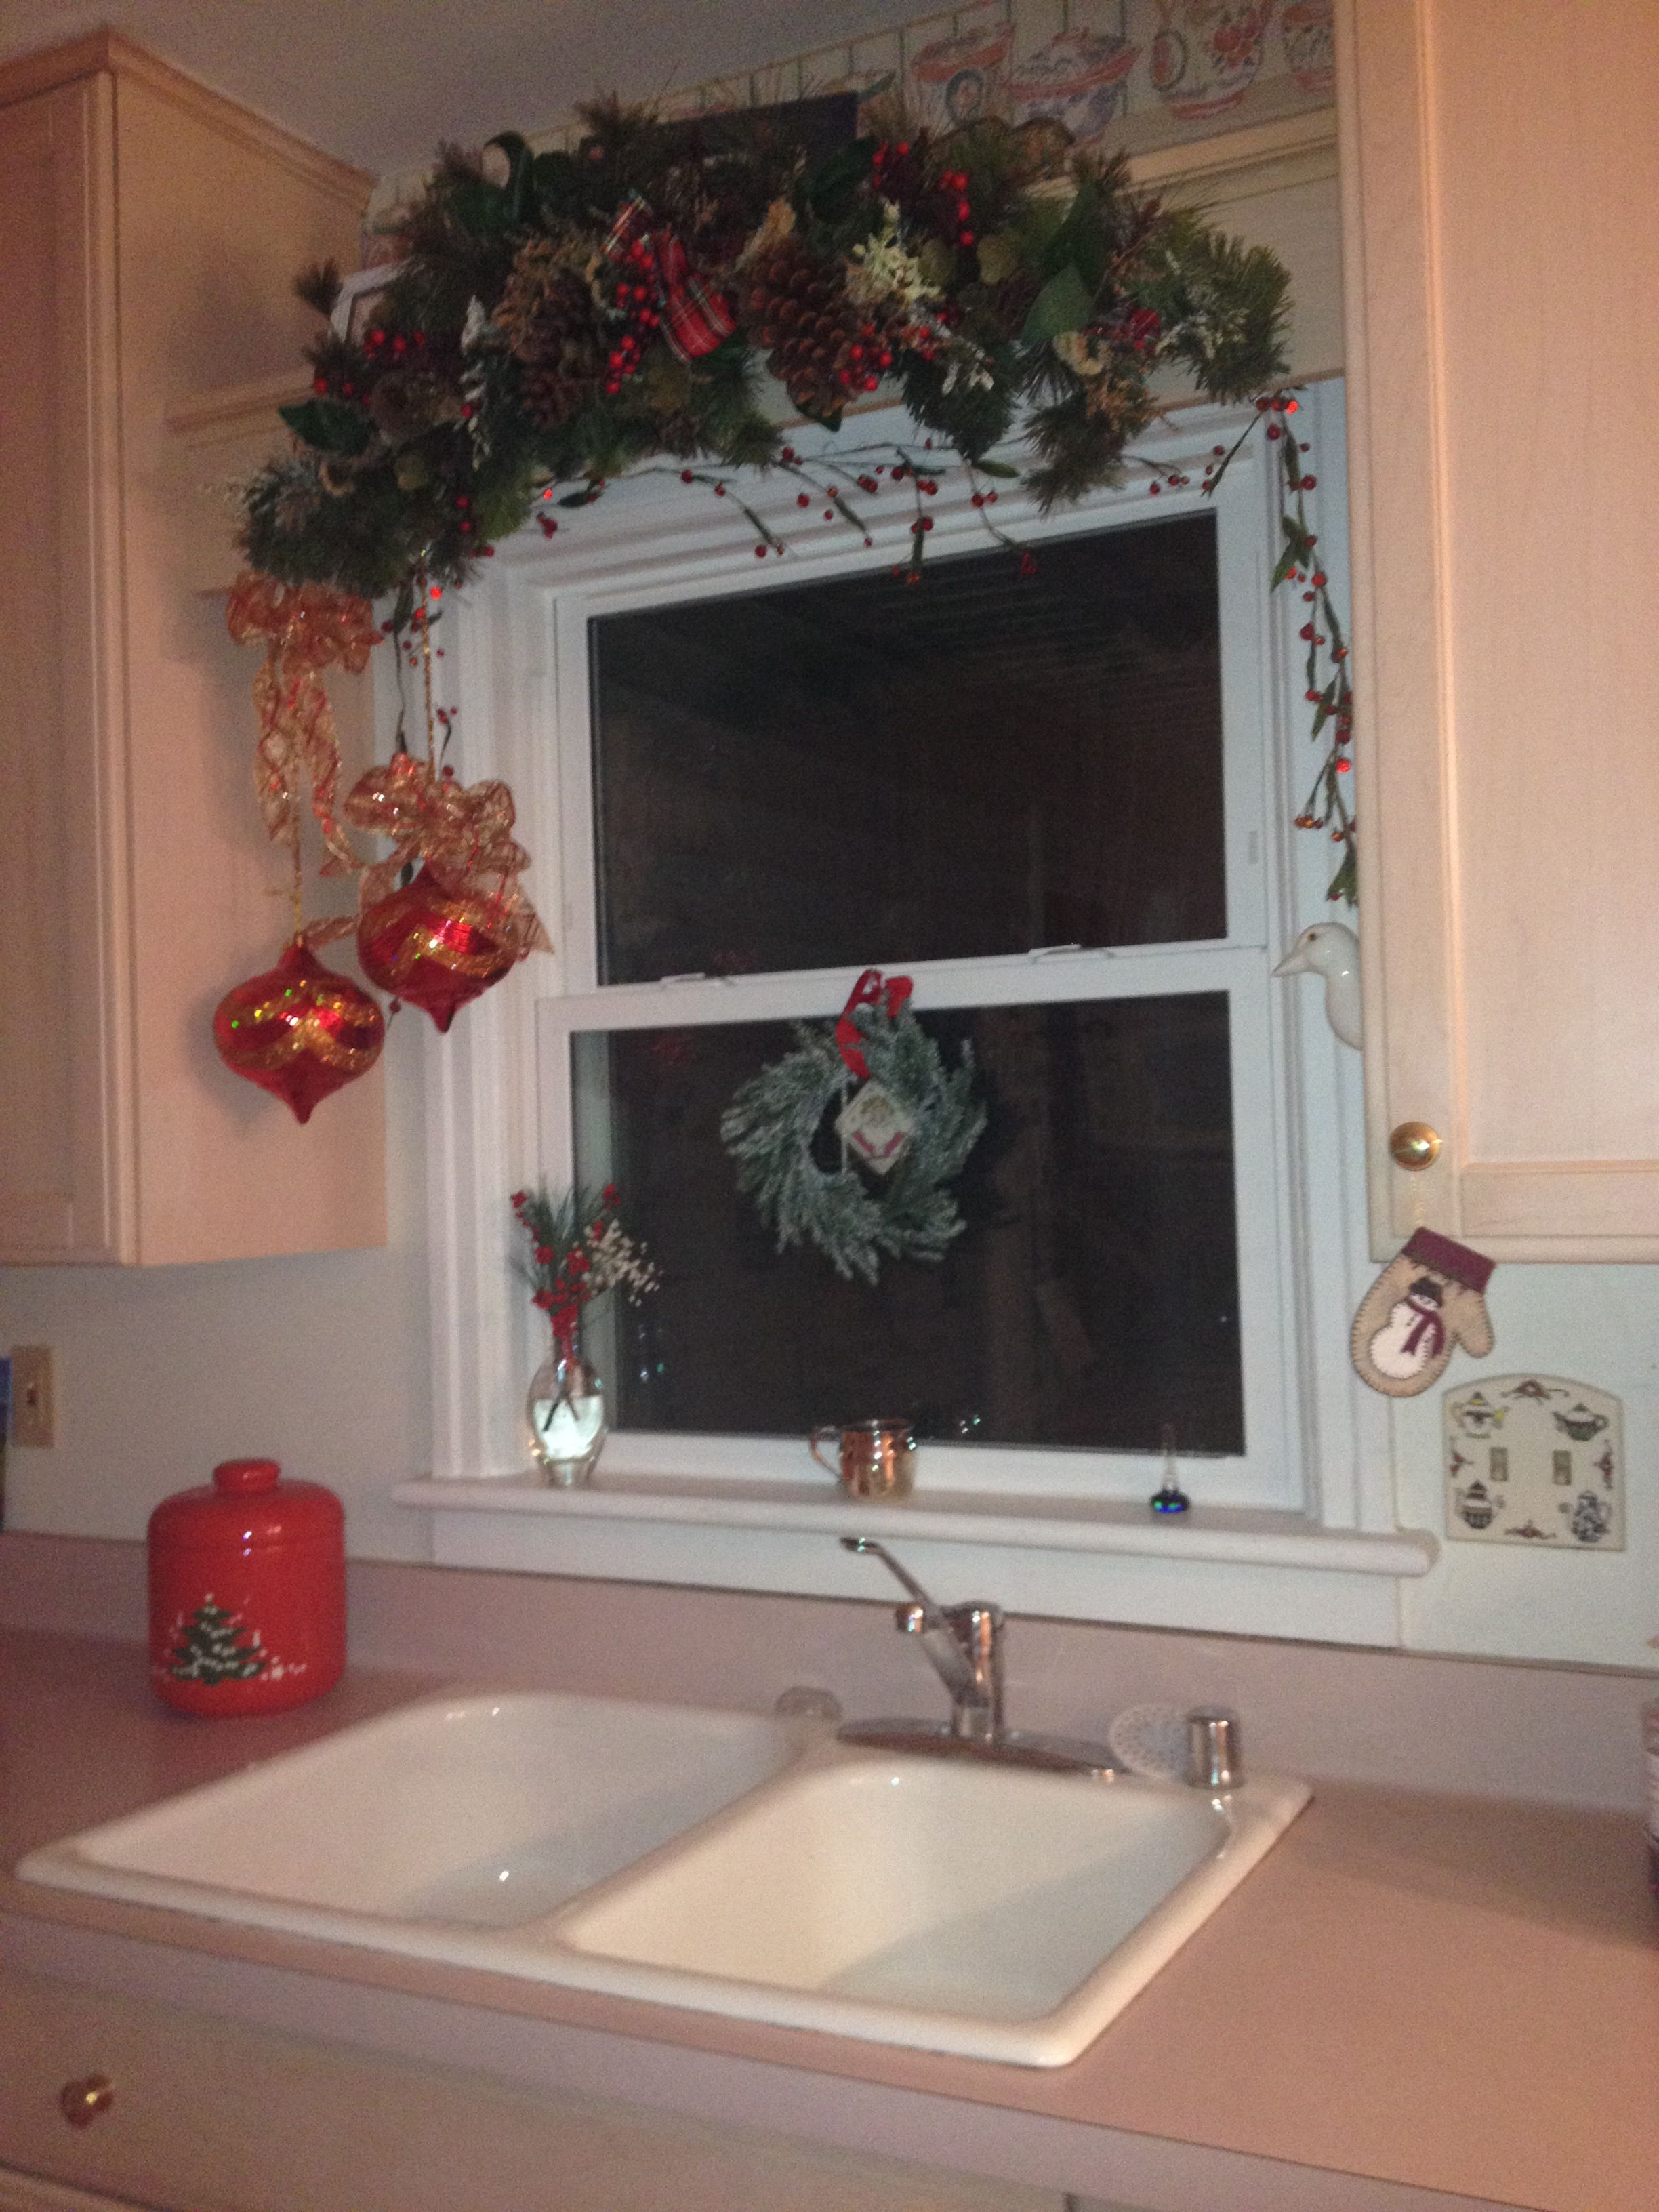 Kitchen sink trimmed out Christmas decor inspiration